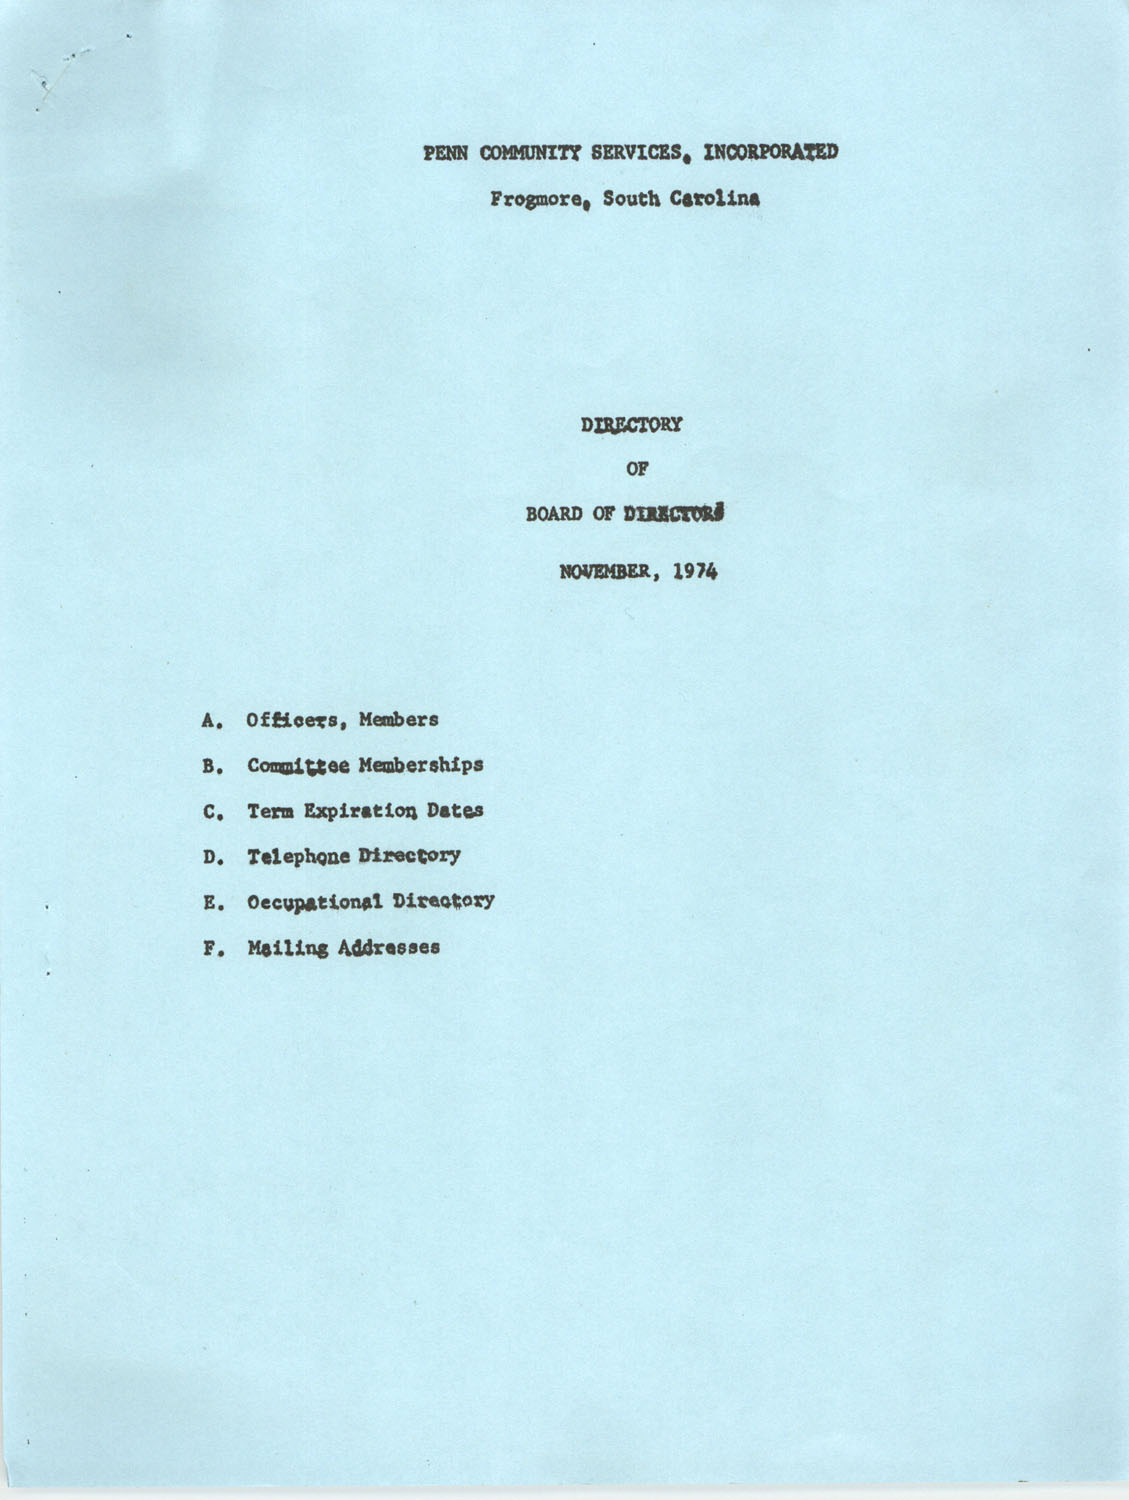 Directory of Board of Trustees, Penn Community Services, November 1974